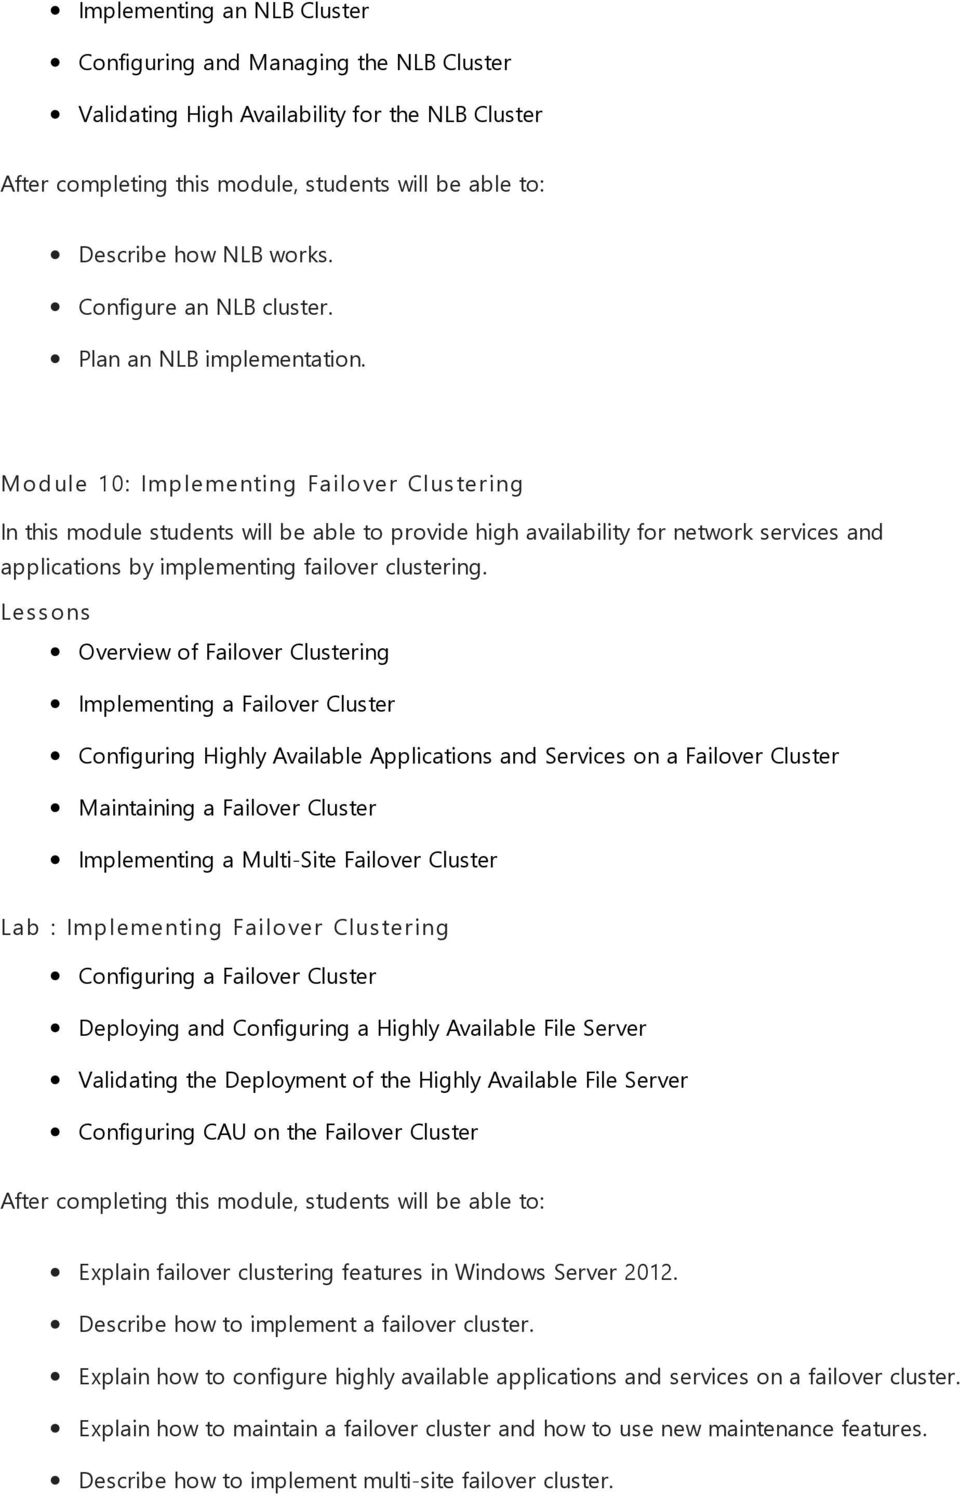 Overview of Failover Clustering Implementing a Failover Cluster Configuring Highly Available Applications and Services on a Failover Cluster Maintaining a Failover Cluster Implementing a Multi-Site